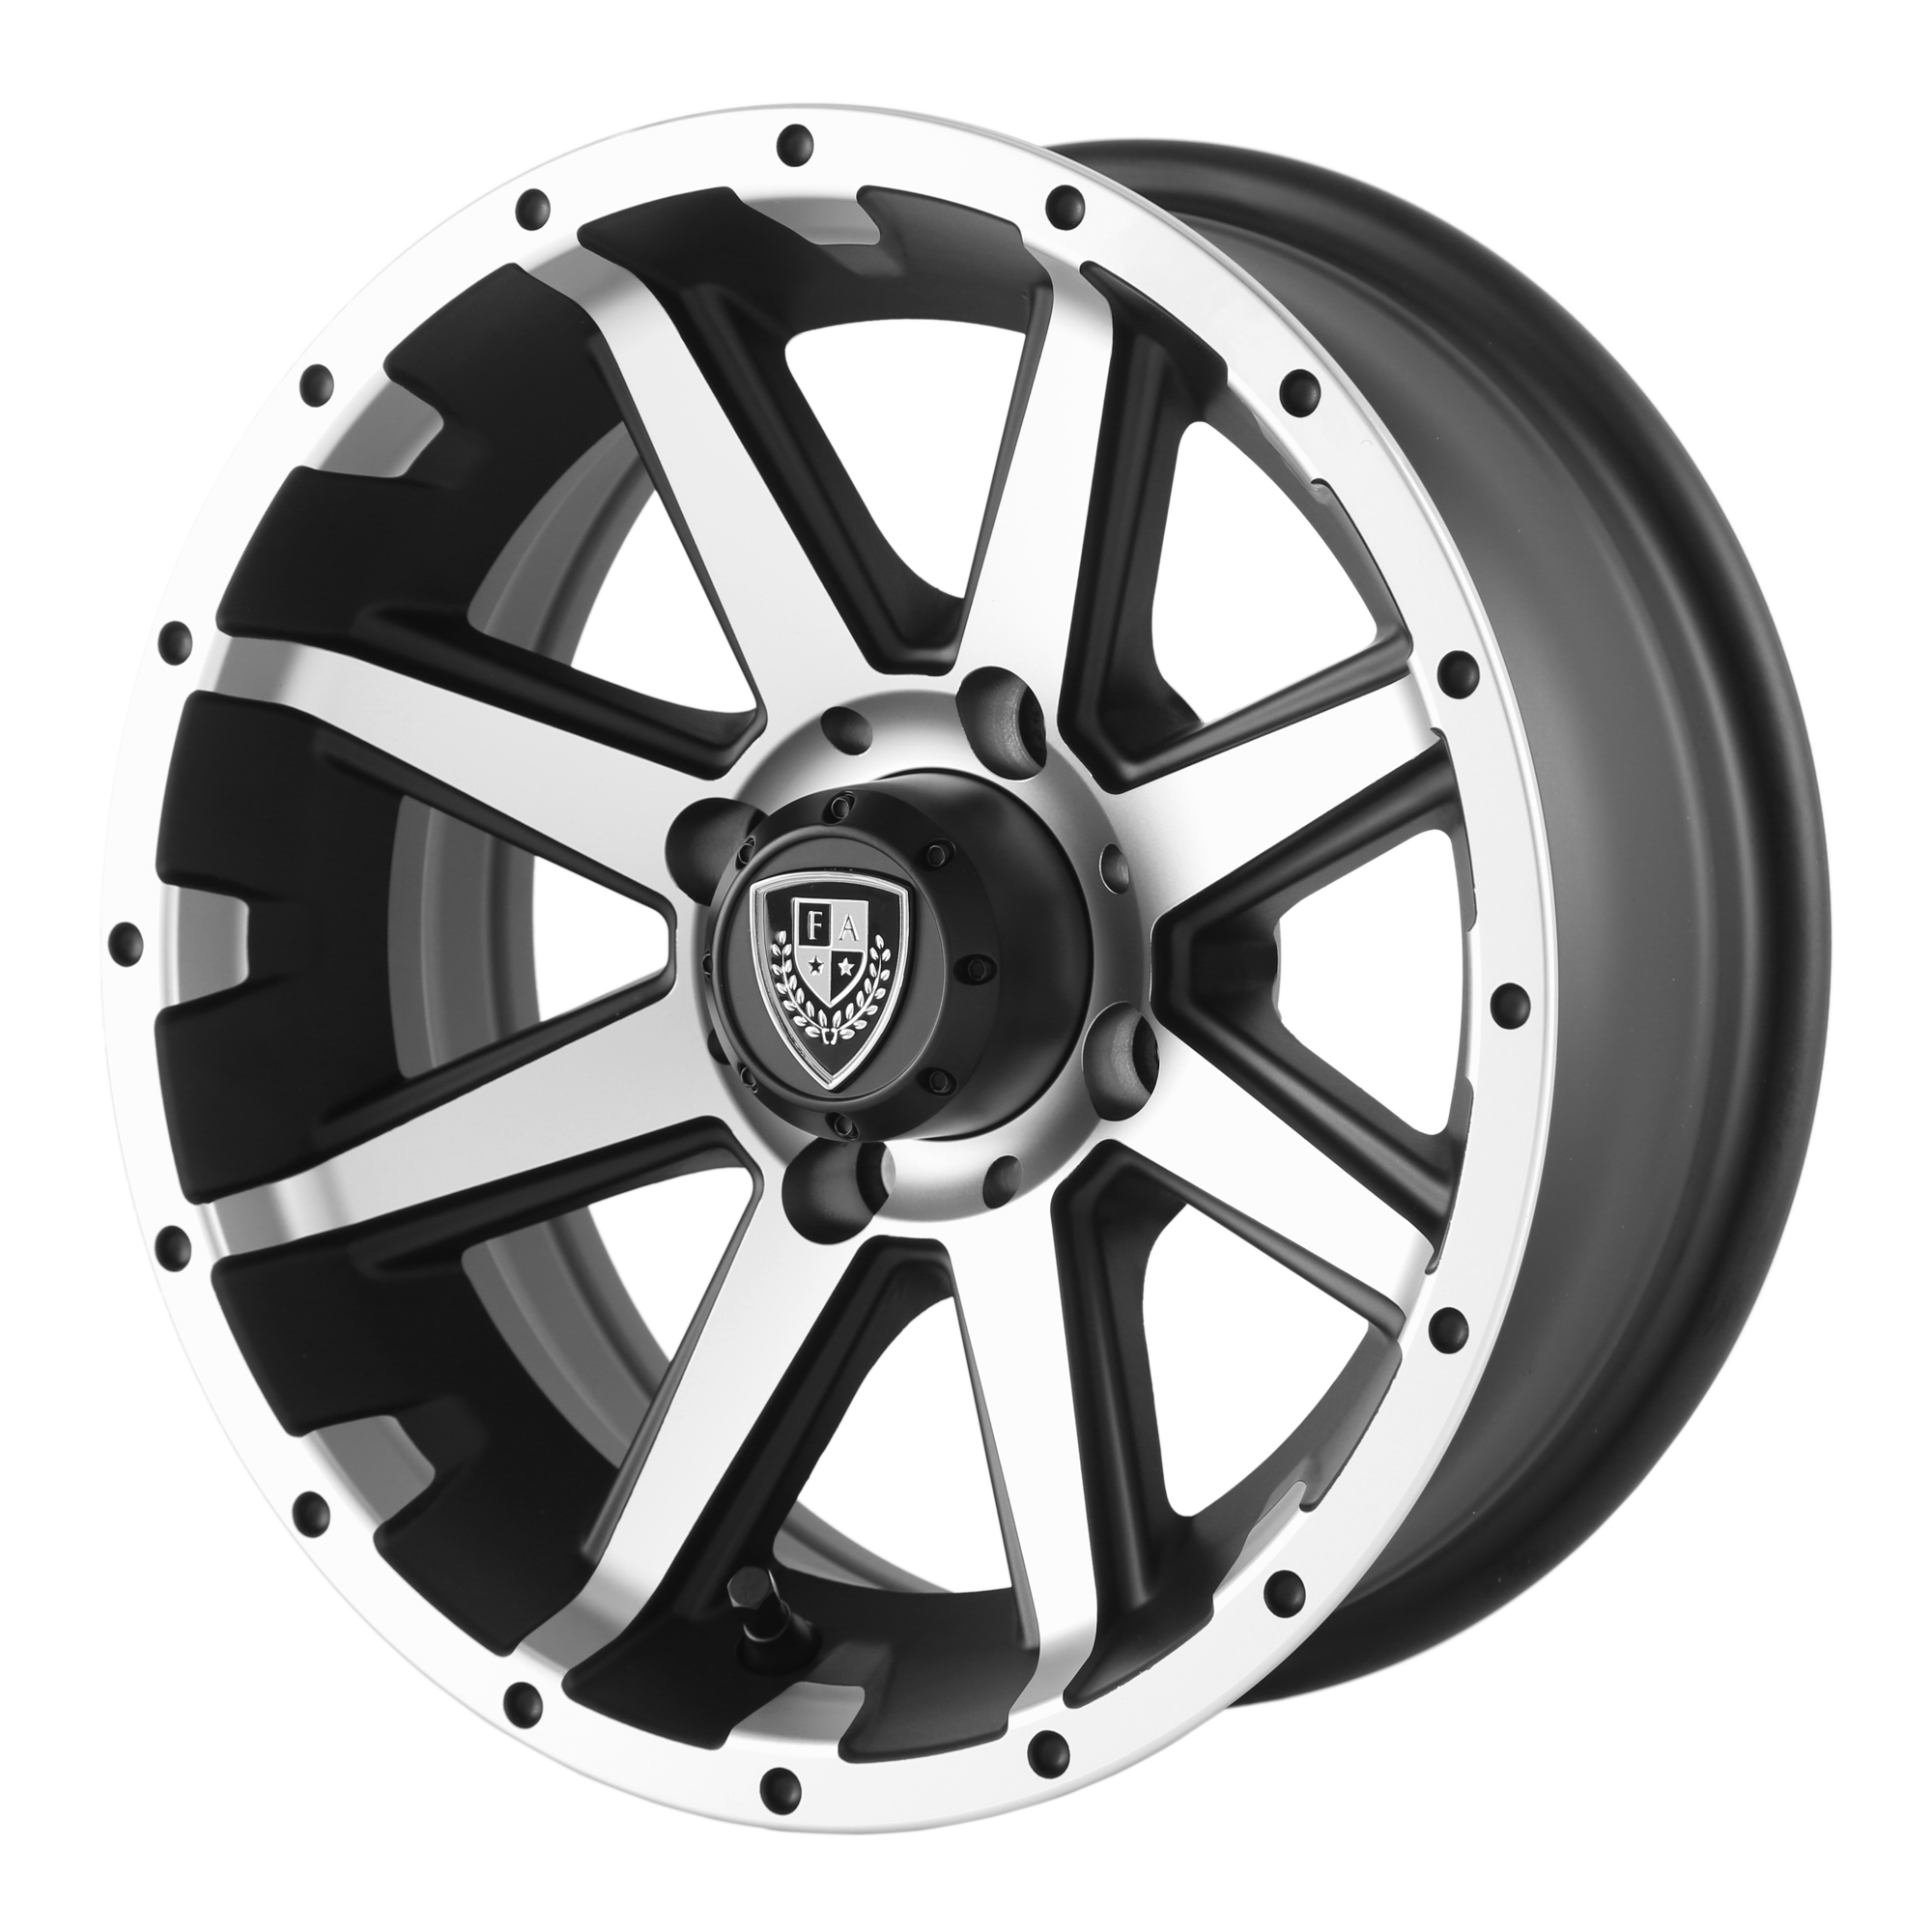 Fairway Alloys FA-135-M